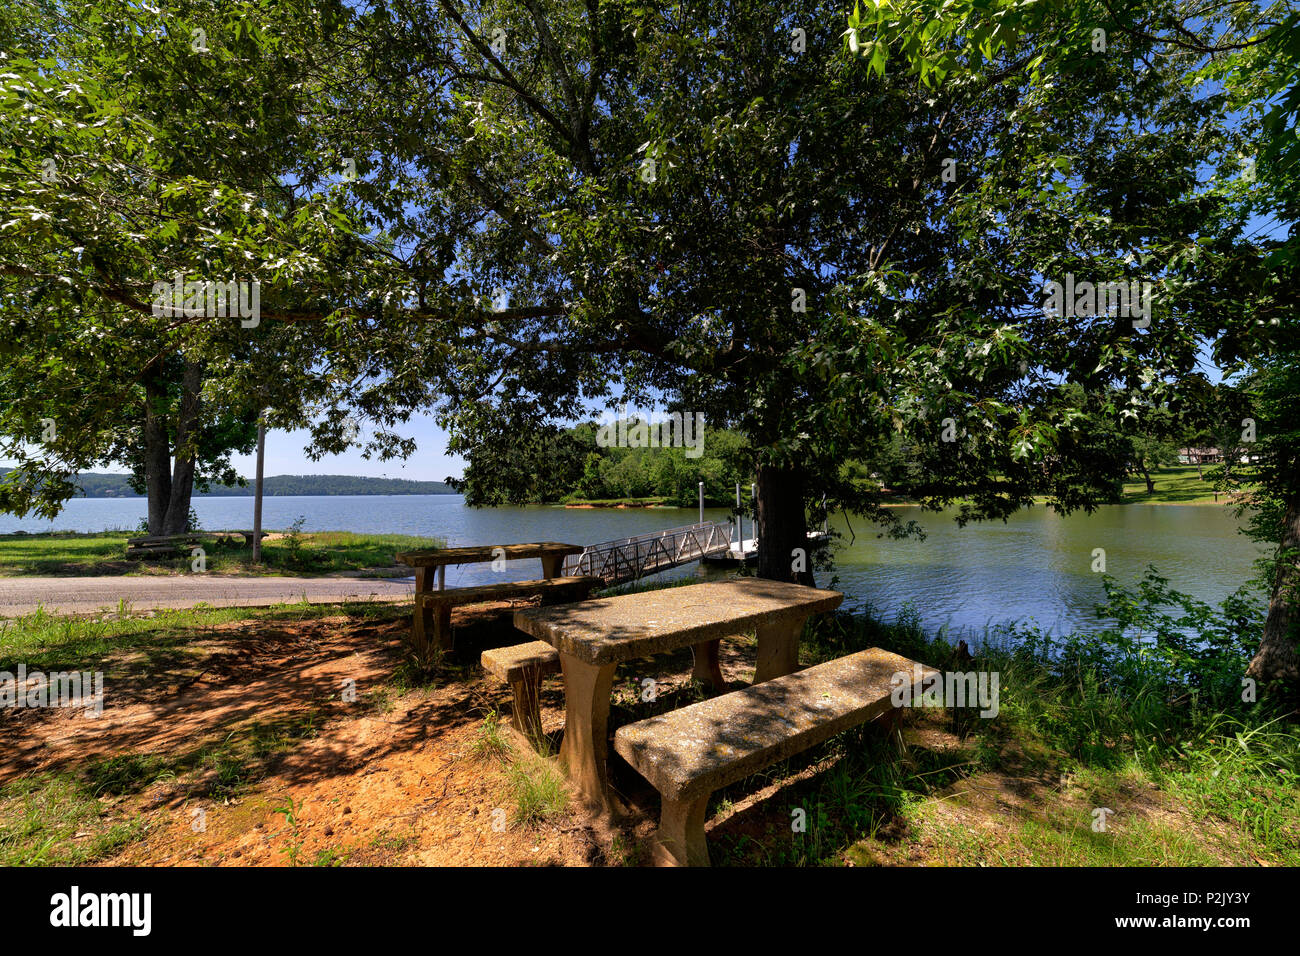 The boat launch and picnic area at the public access to Pickwick Lake in Waterloo, Alabama. - Stock Image